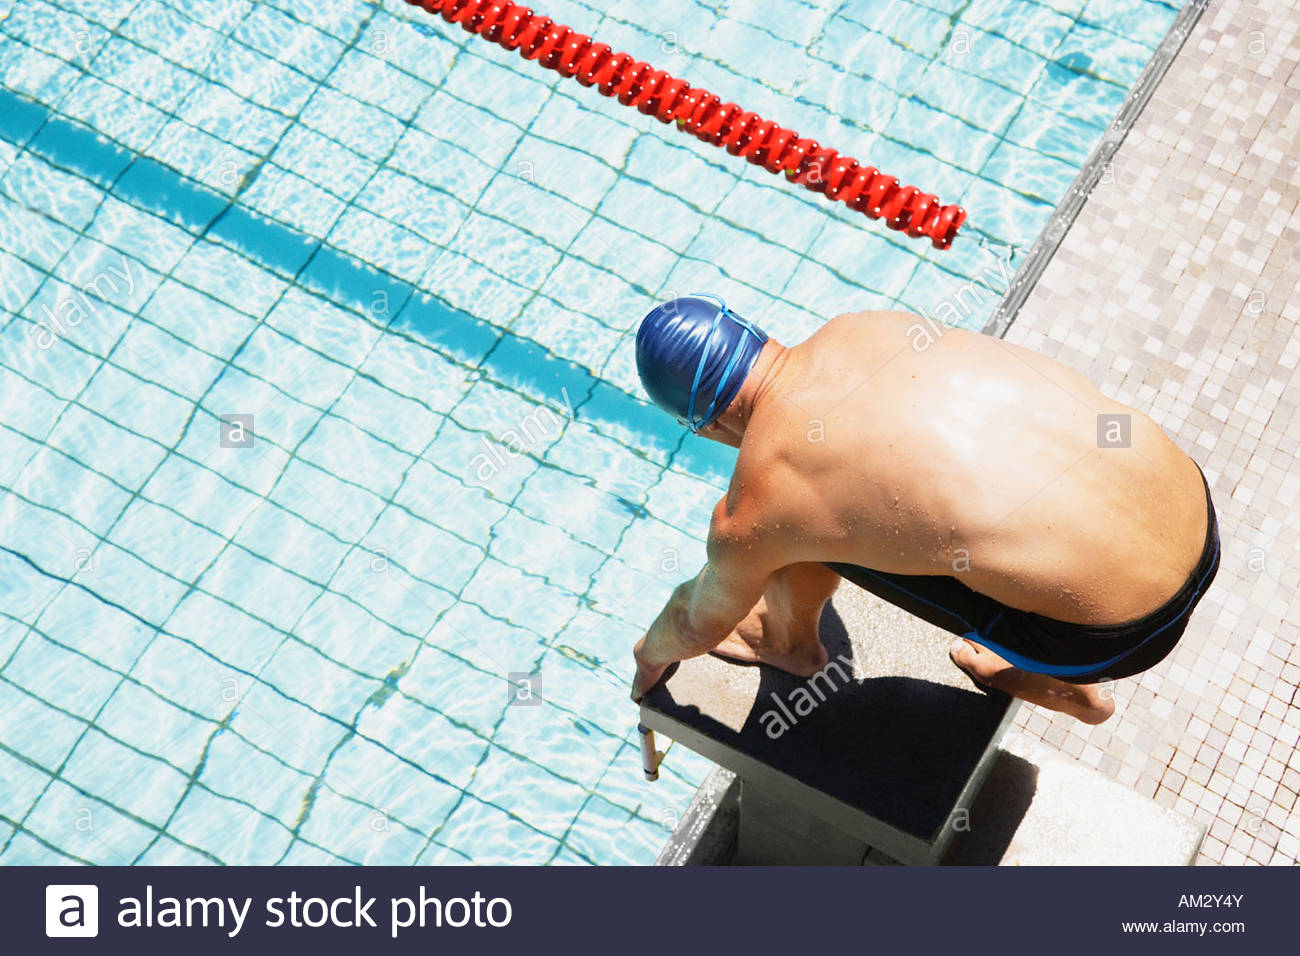 Swimmer on pool start block - Stock Image